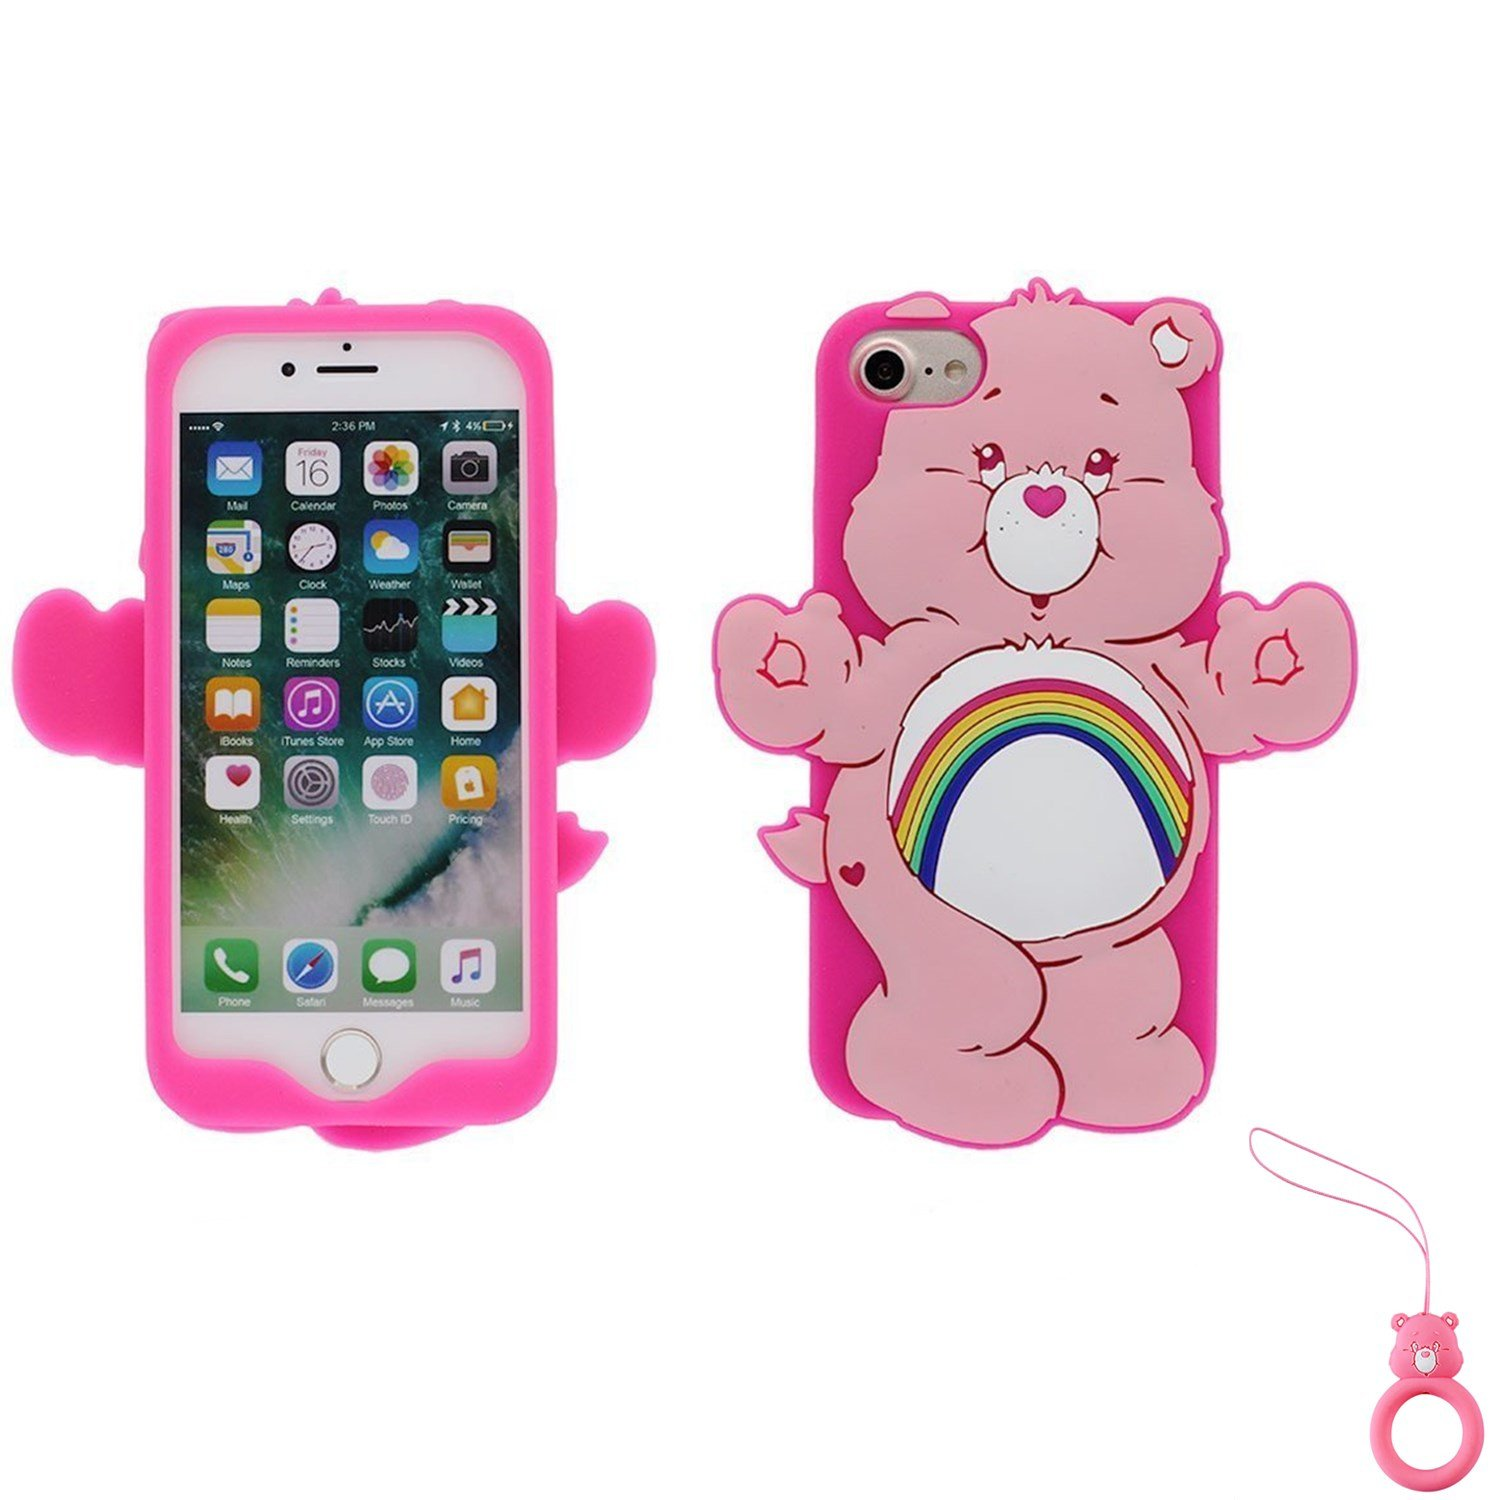 migliori scarpe da ginnastica 099ad 80ad7 Artbling Case for iPhone 6 6S,Silicone 3D Cartoon Animal Cover,Kids Girls  Lovely Cute Cases,Kawaii Soft Gel Rubber Unique Fun Cool Character ...